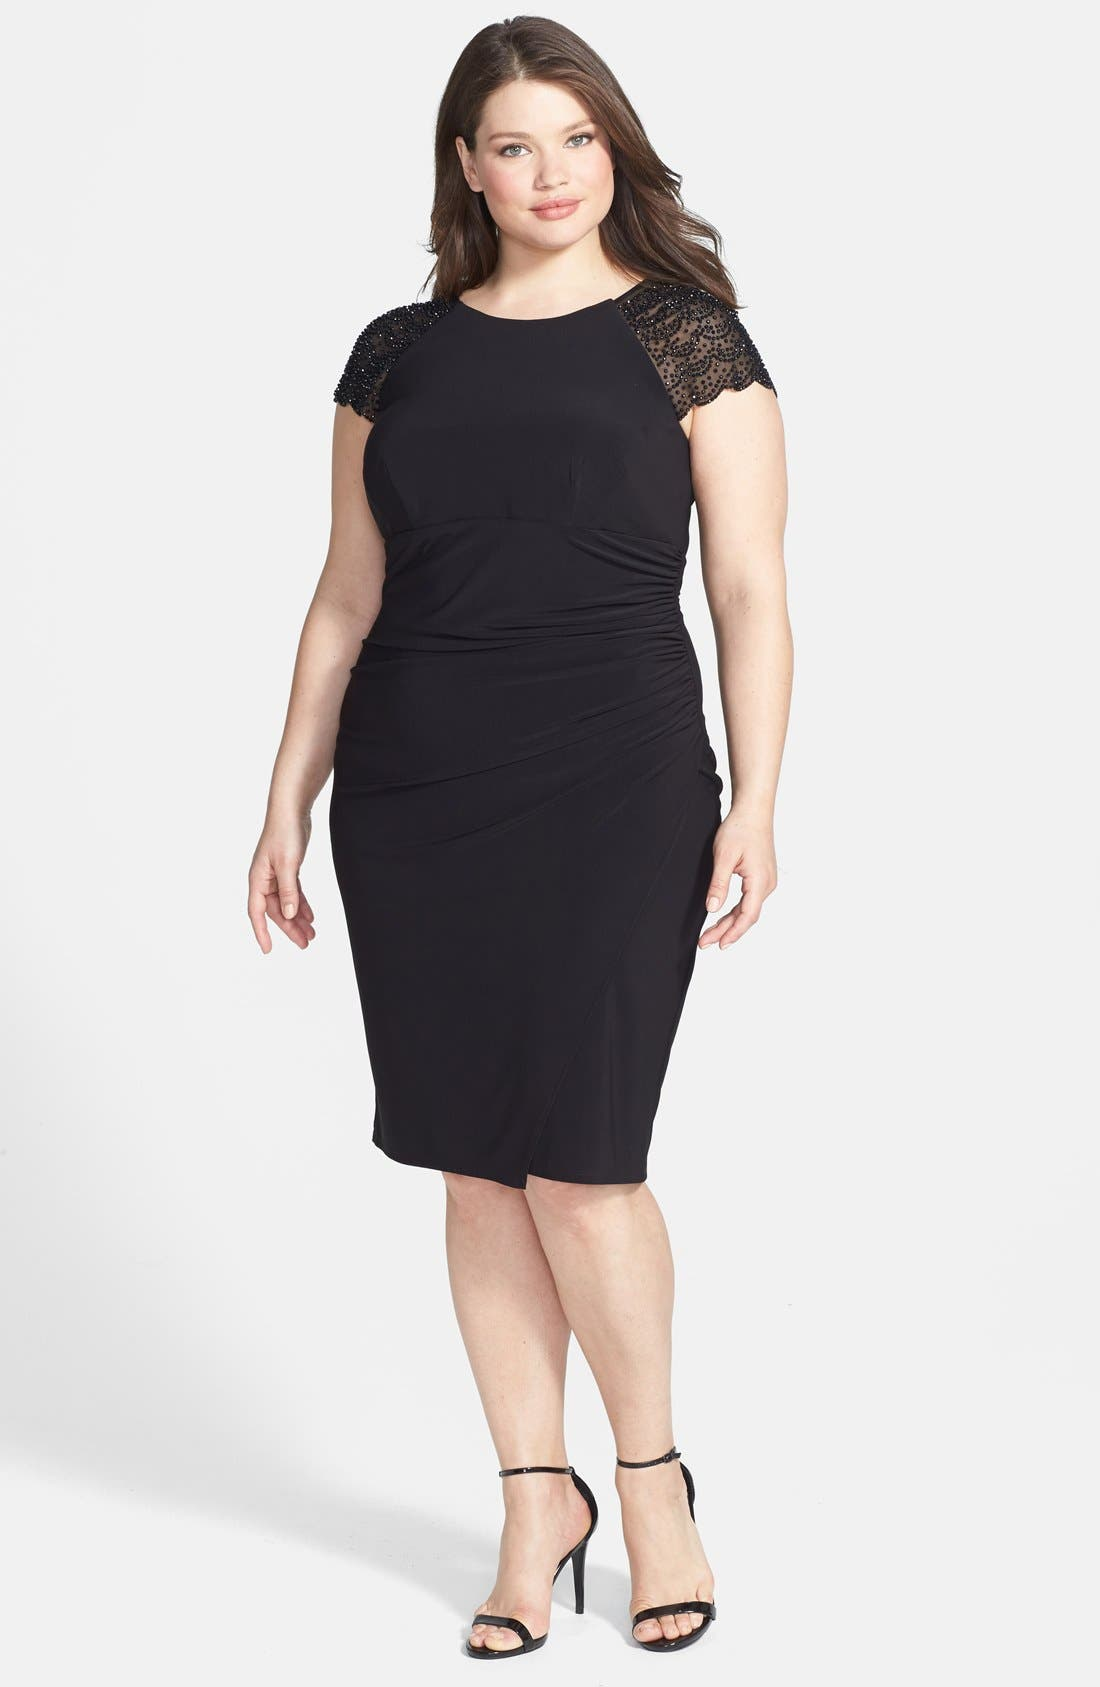 Main Image - Betsy & Adam Embellished Cap Sleeve Cocktail Dress (Plus Size)